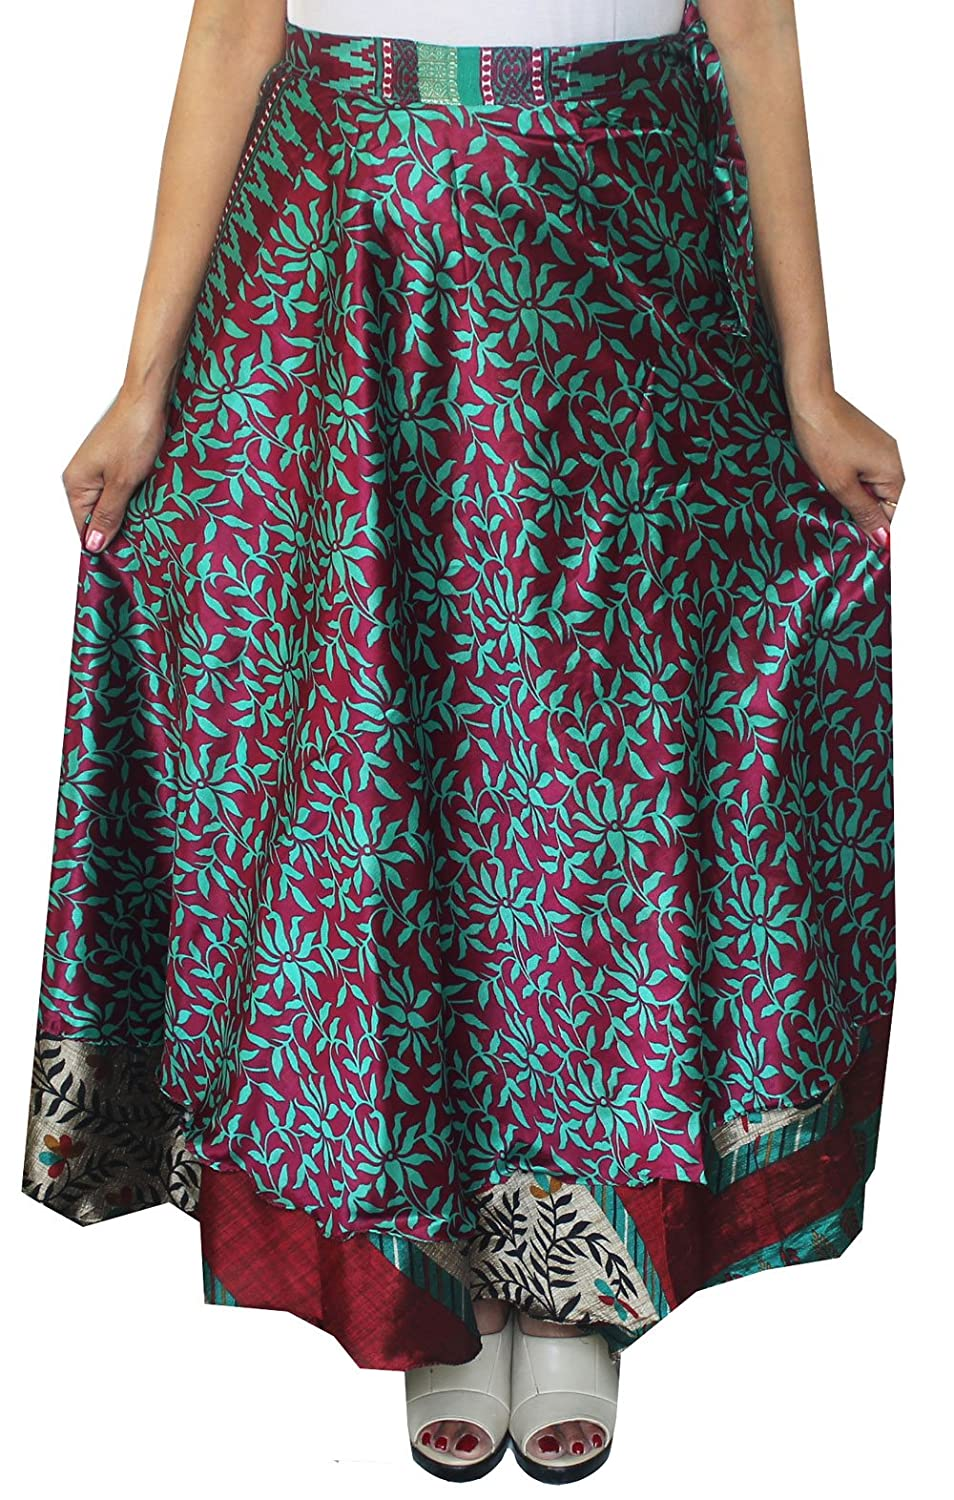 MapleClothing Magia Wrap Indian Sari 5 pc allingrosso Lotto Delle Donne Vicino a Long Skirt